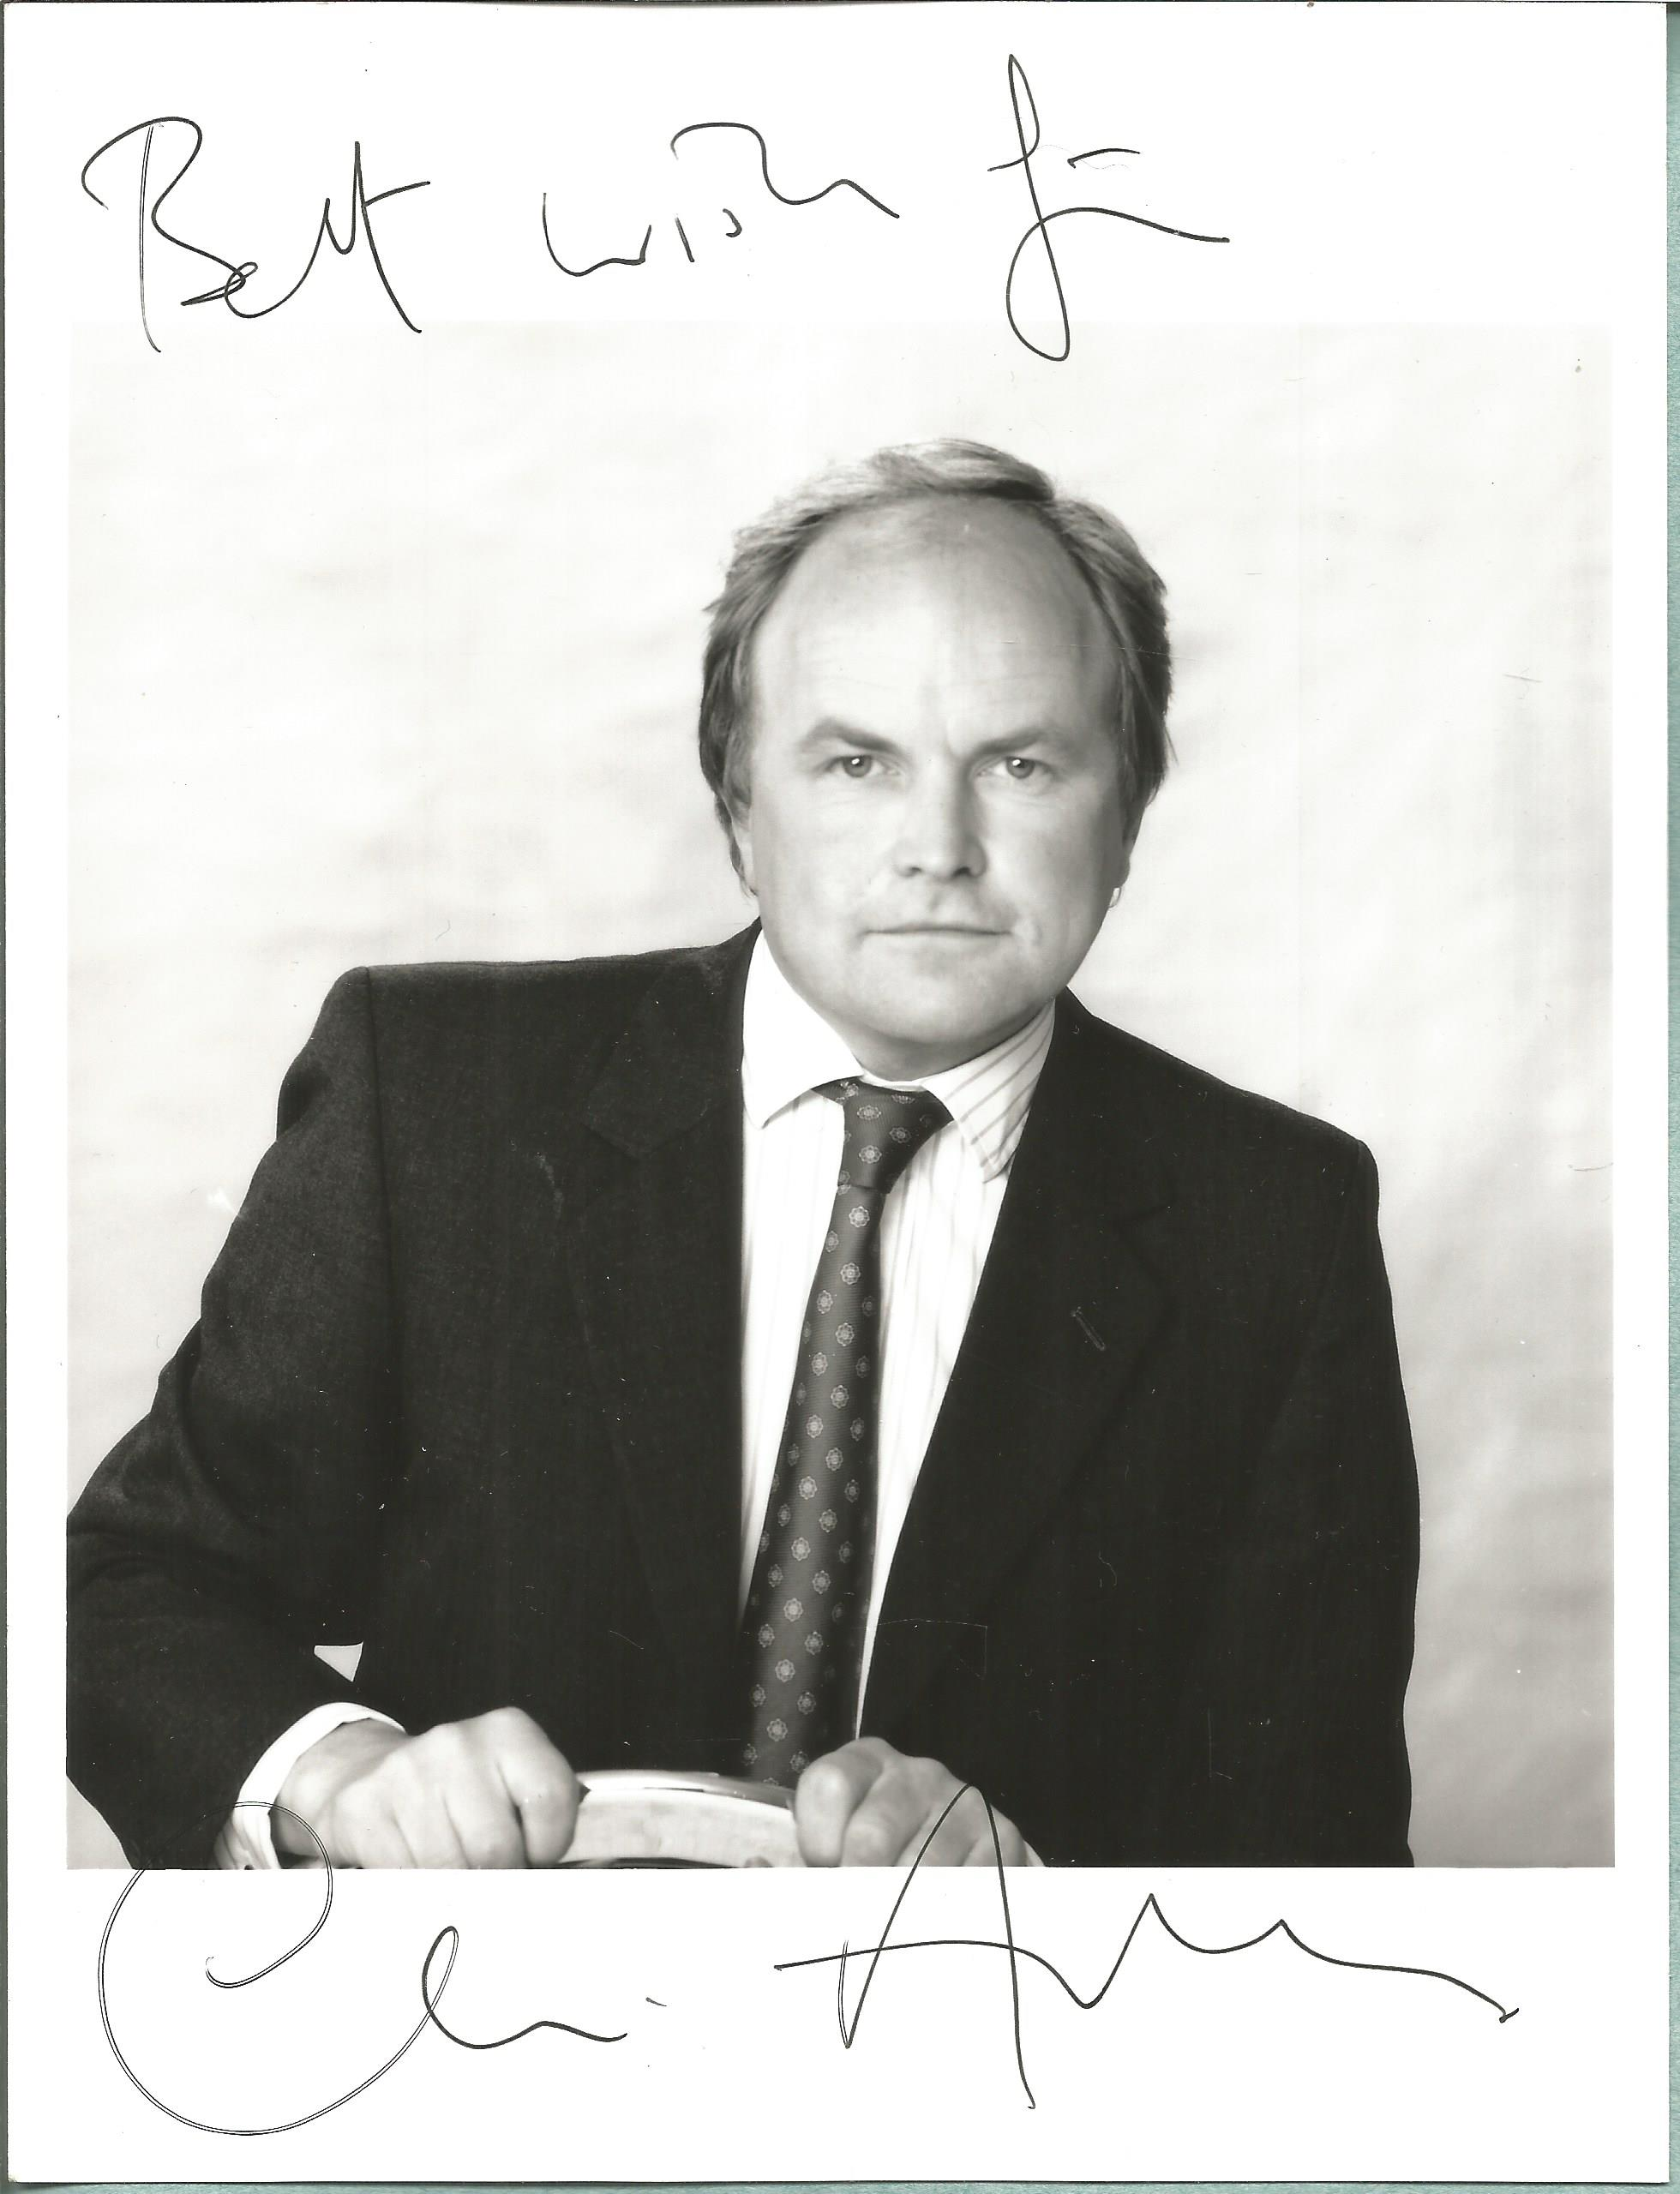 Clive Anderson signed 8x6 black and white photo. Clive Stuart Anderson (born 10 December 1952) is an